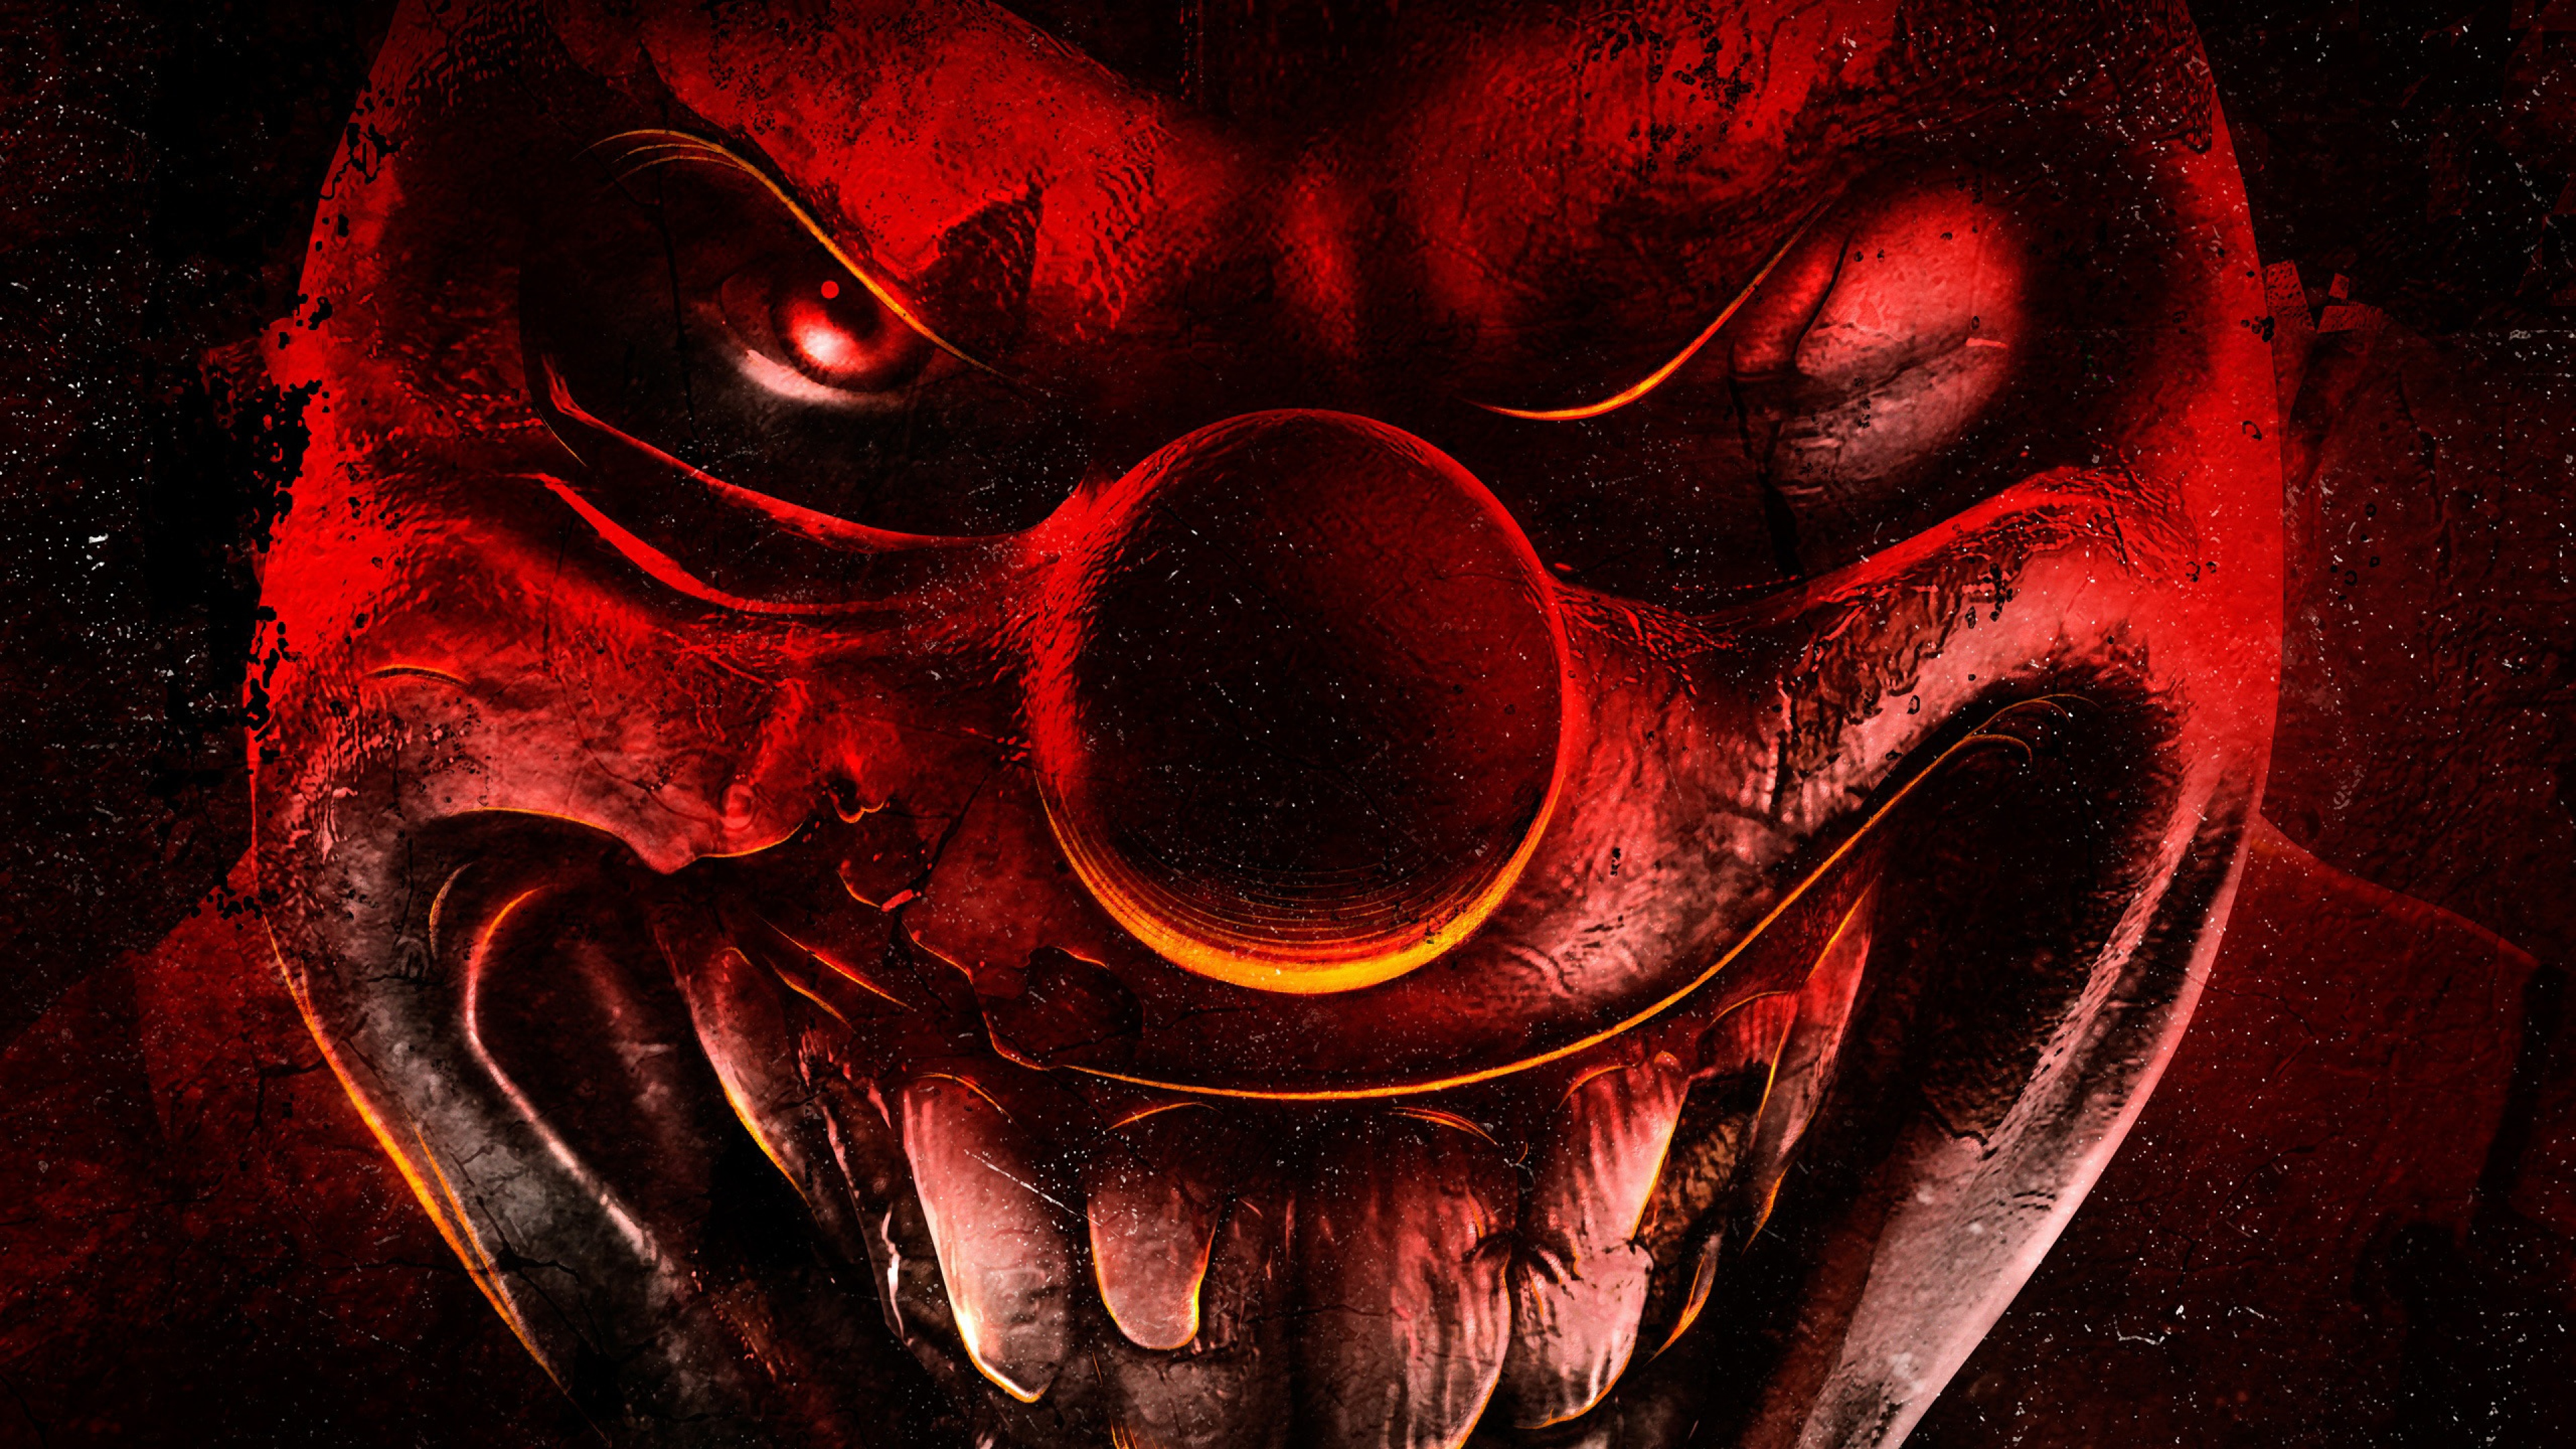 twisted metal 1535966336 - Twisted Metal - twisted metal wallpapers, games wallpapers